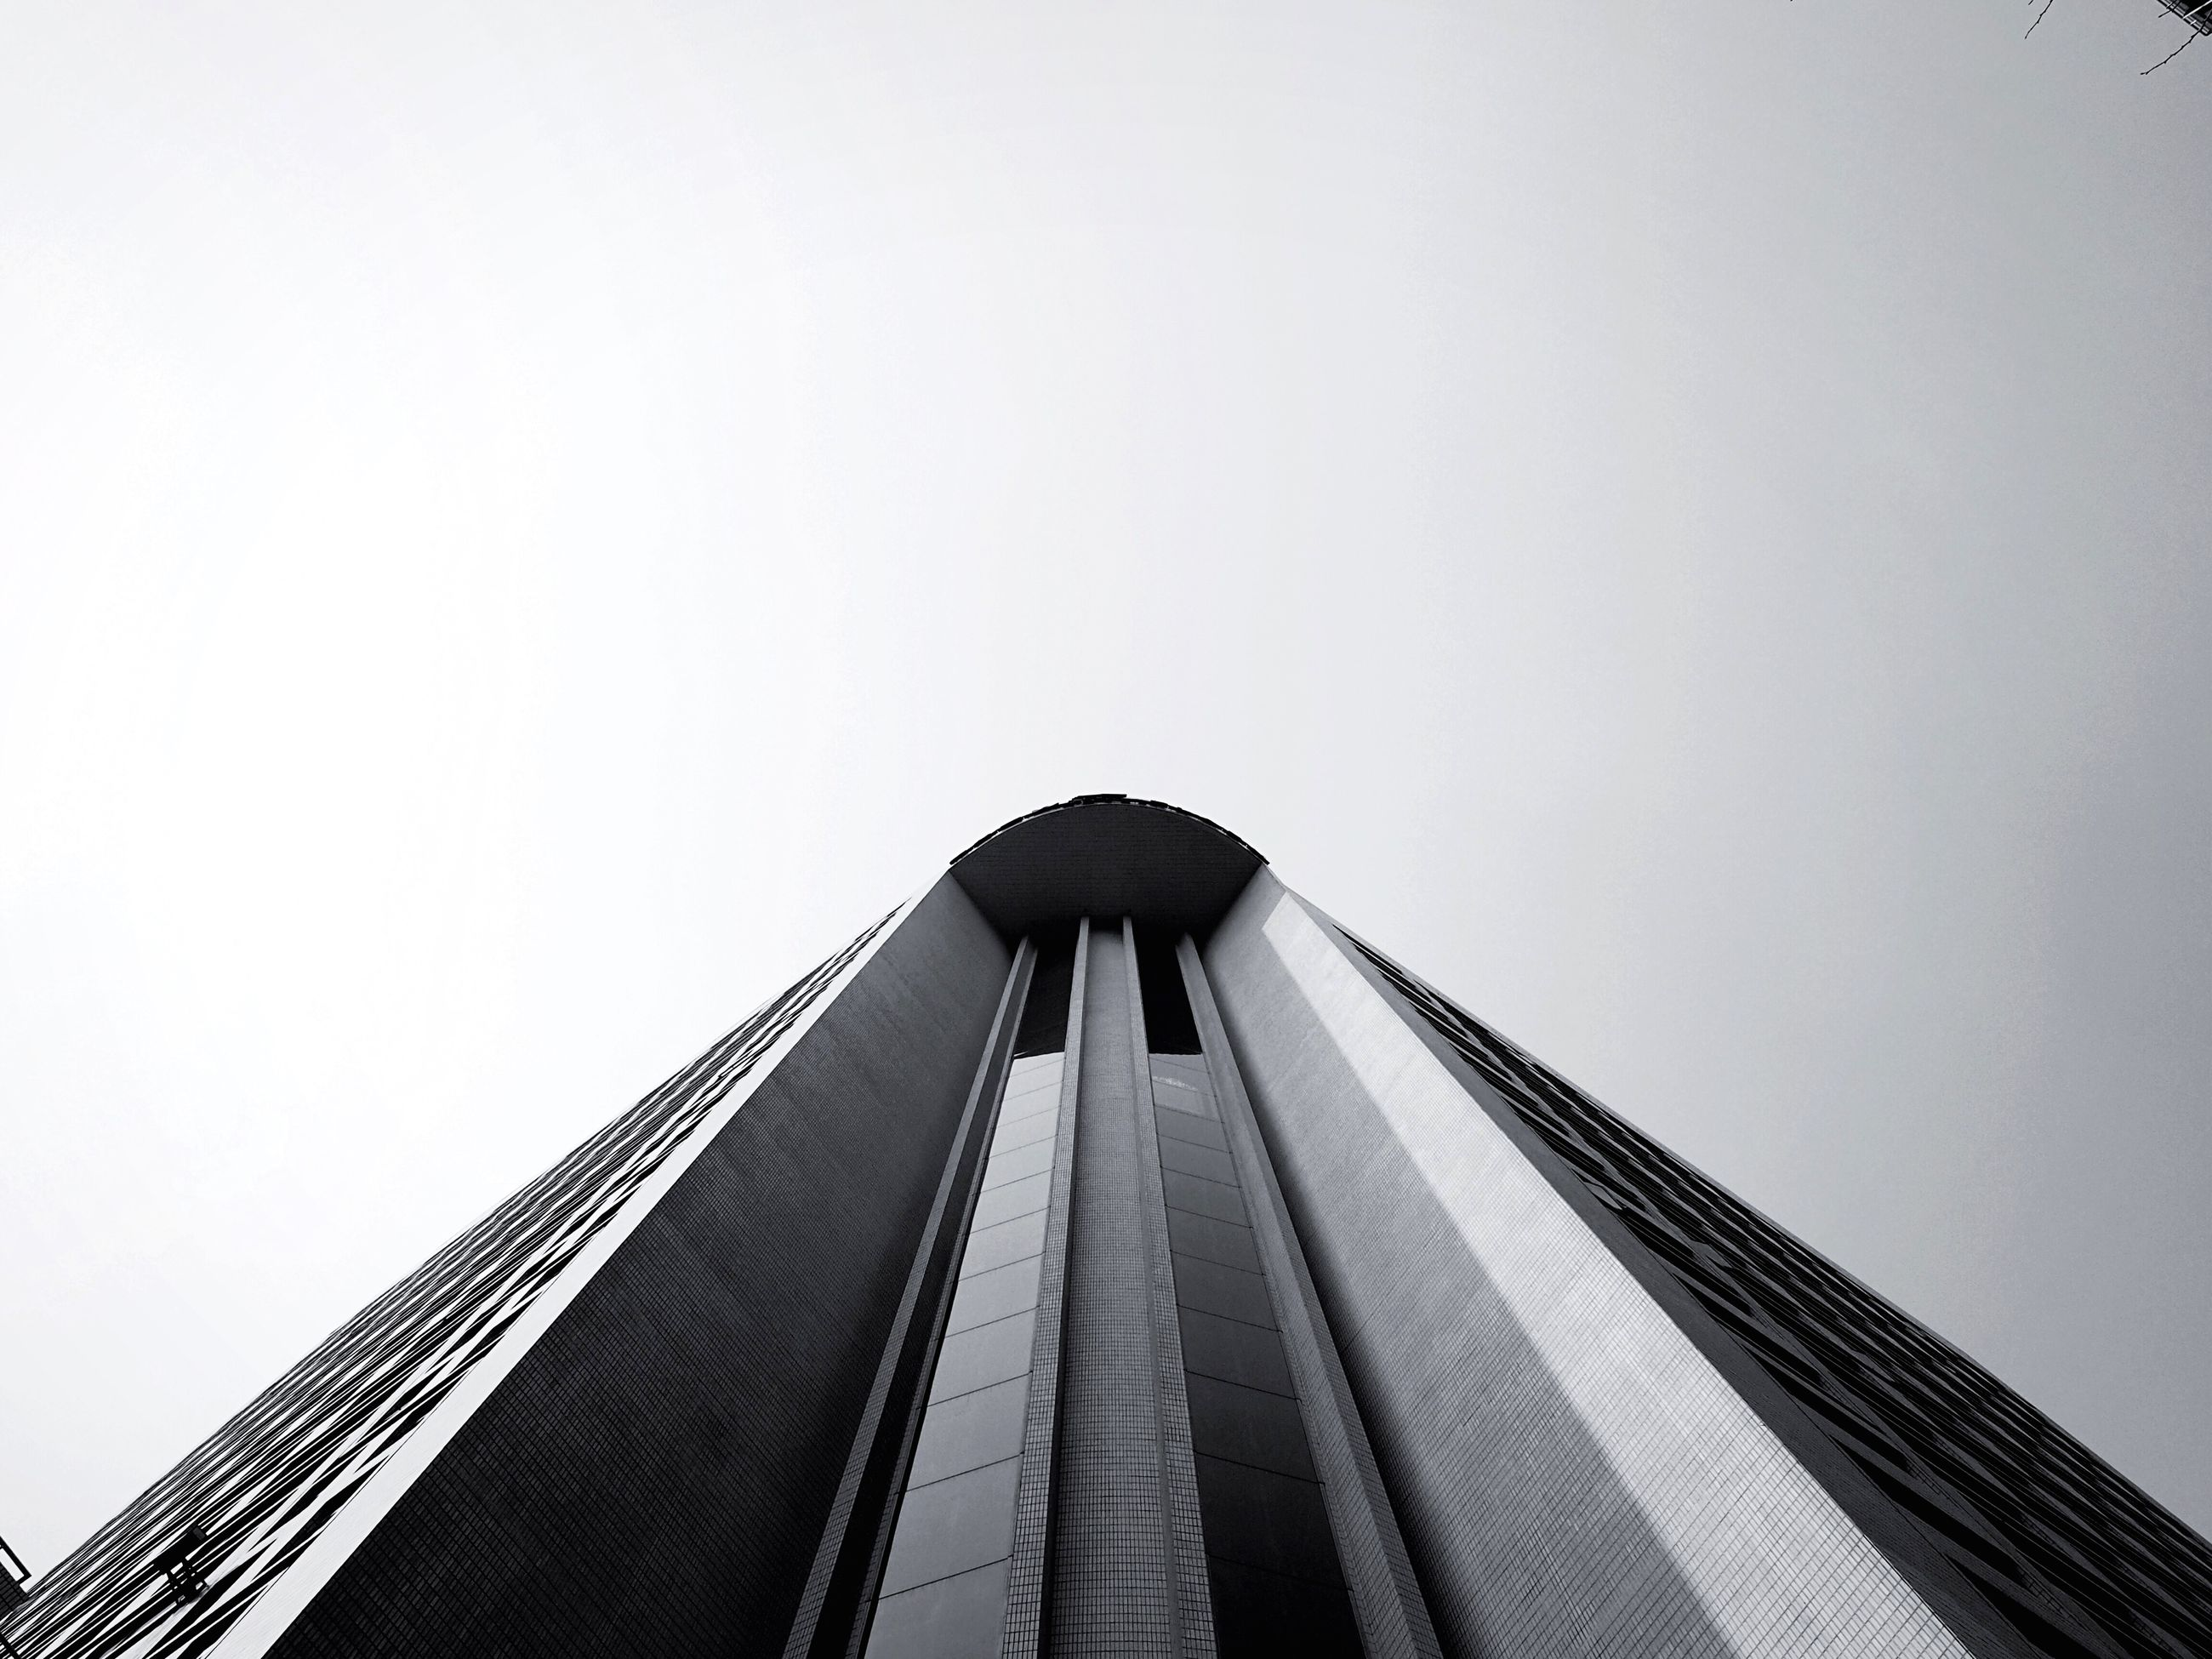 architecture, built structure, low angle view, clear sky, building exterior, copy space, modern, tall - high, skyscraper, city, tower, office building, outdoors, tall, day, sky, capital cities, travel destinations, building, city life